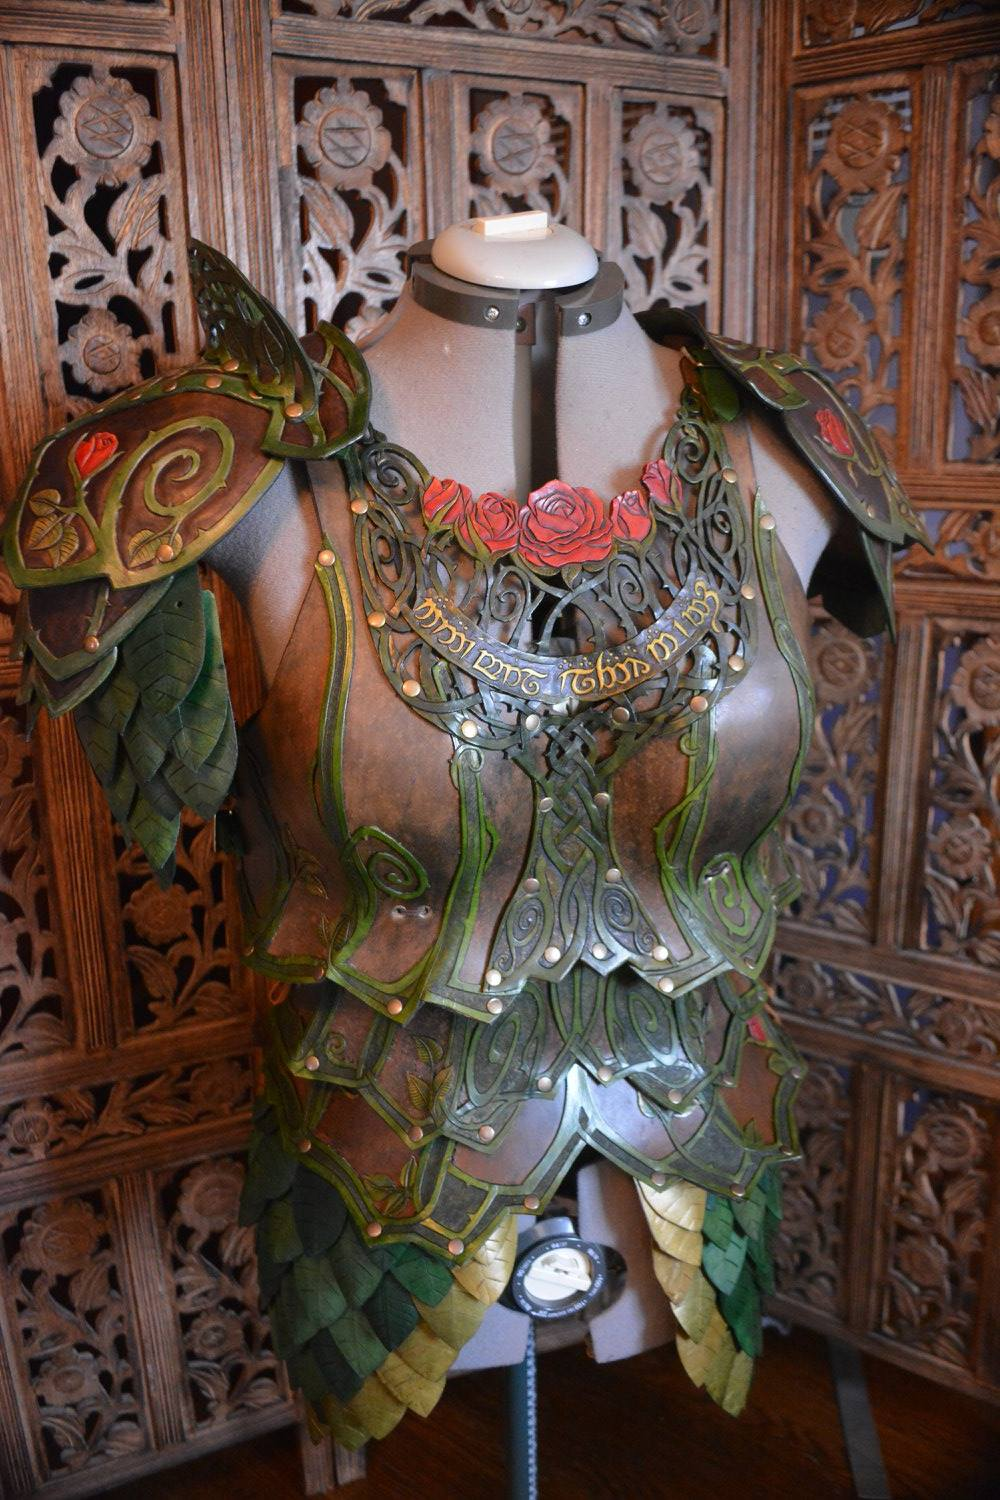 briar_rose_elven_leather_armor_by_savagepunkstudio-daeump9.jpg